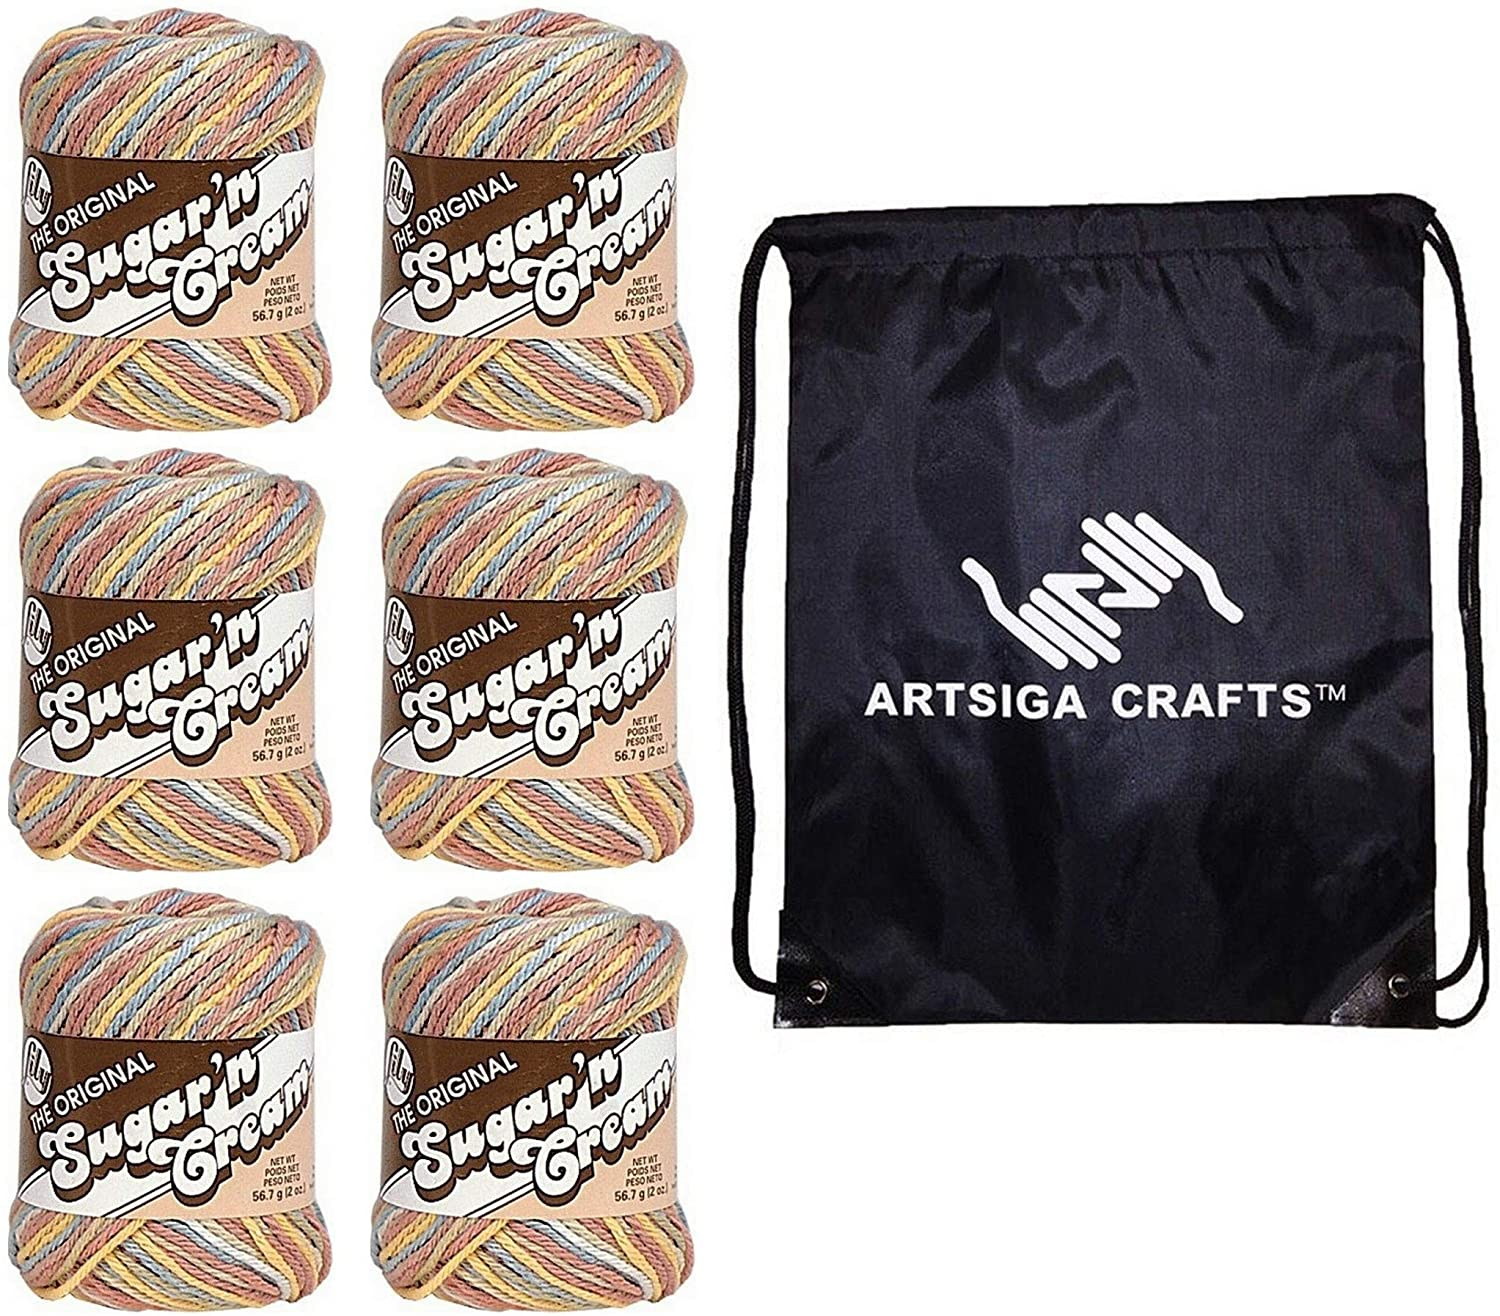 Lily Knitting Yarn Sugar N Cream Ombres Potpourri Print 6-Skein Factory Pack (95yd ea. Same Dyelot) 102002178 Bundle with 1 Artsiga Crafts Project Bag